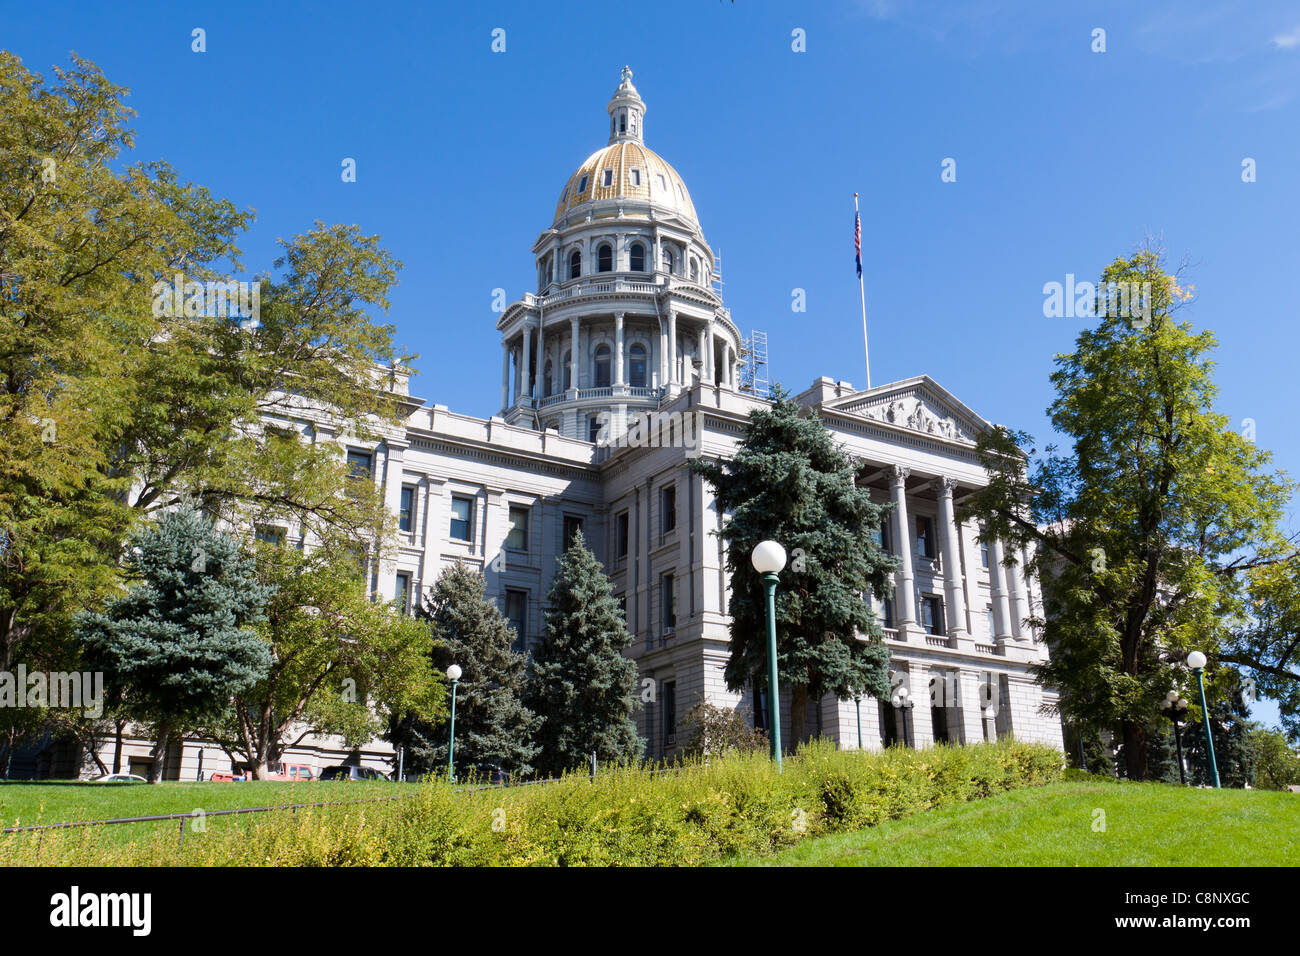 Front of the Colorado state capitol building with gold dome taken from side lawn, in Denver. - Stock Image